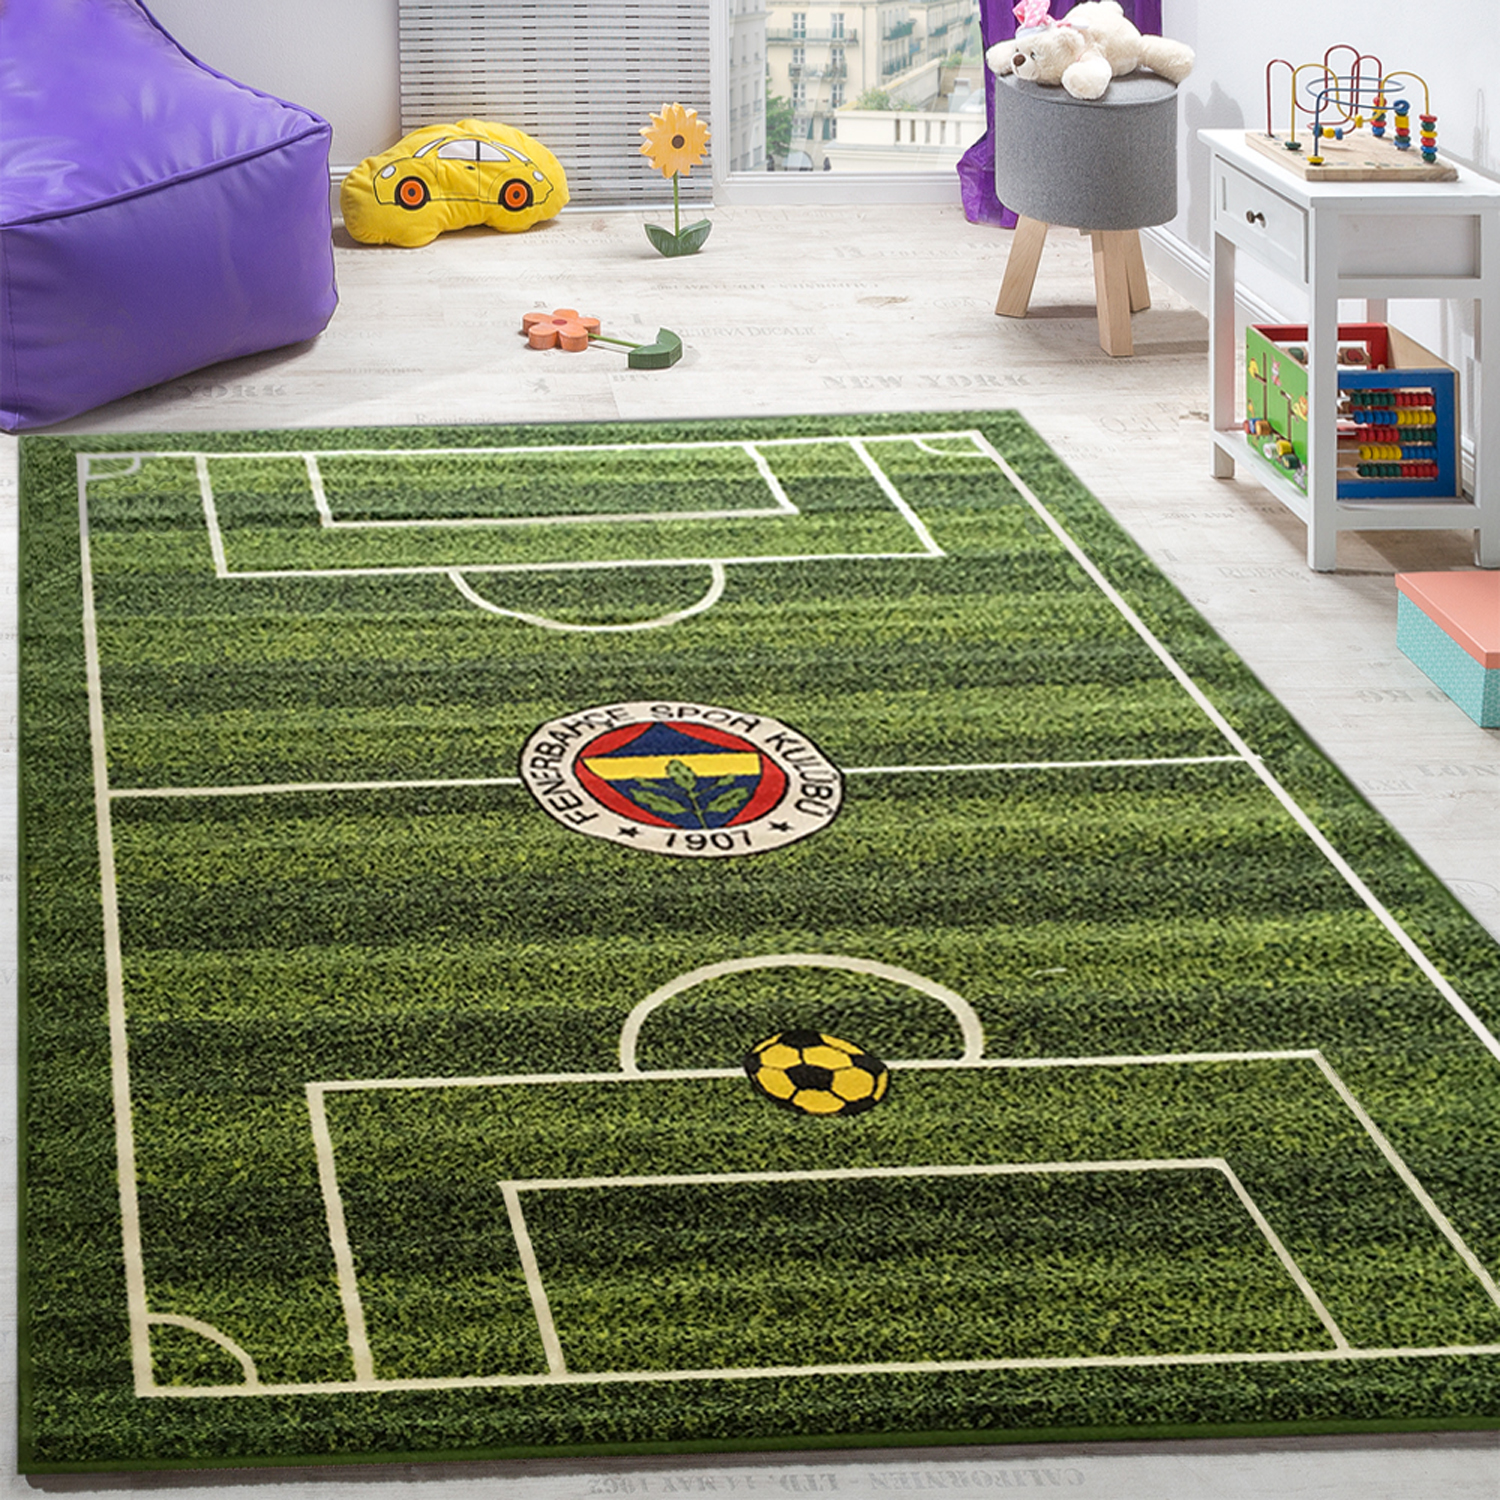 Children's Rug Football Printed Green